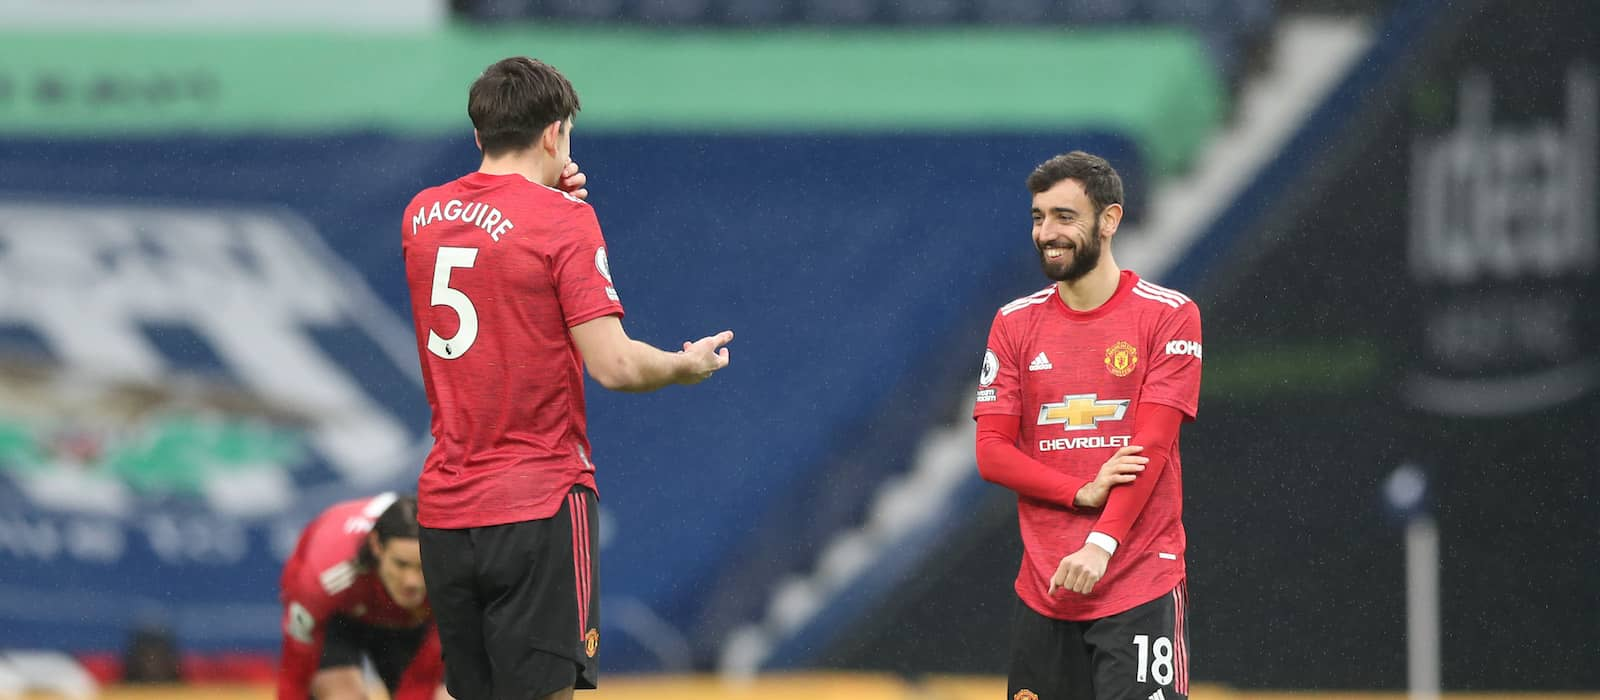 Harry Maguire's attempt to defend his team falls flat